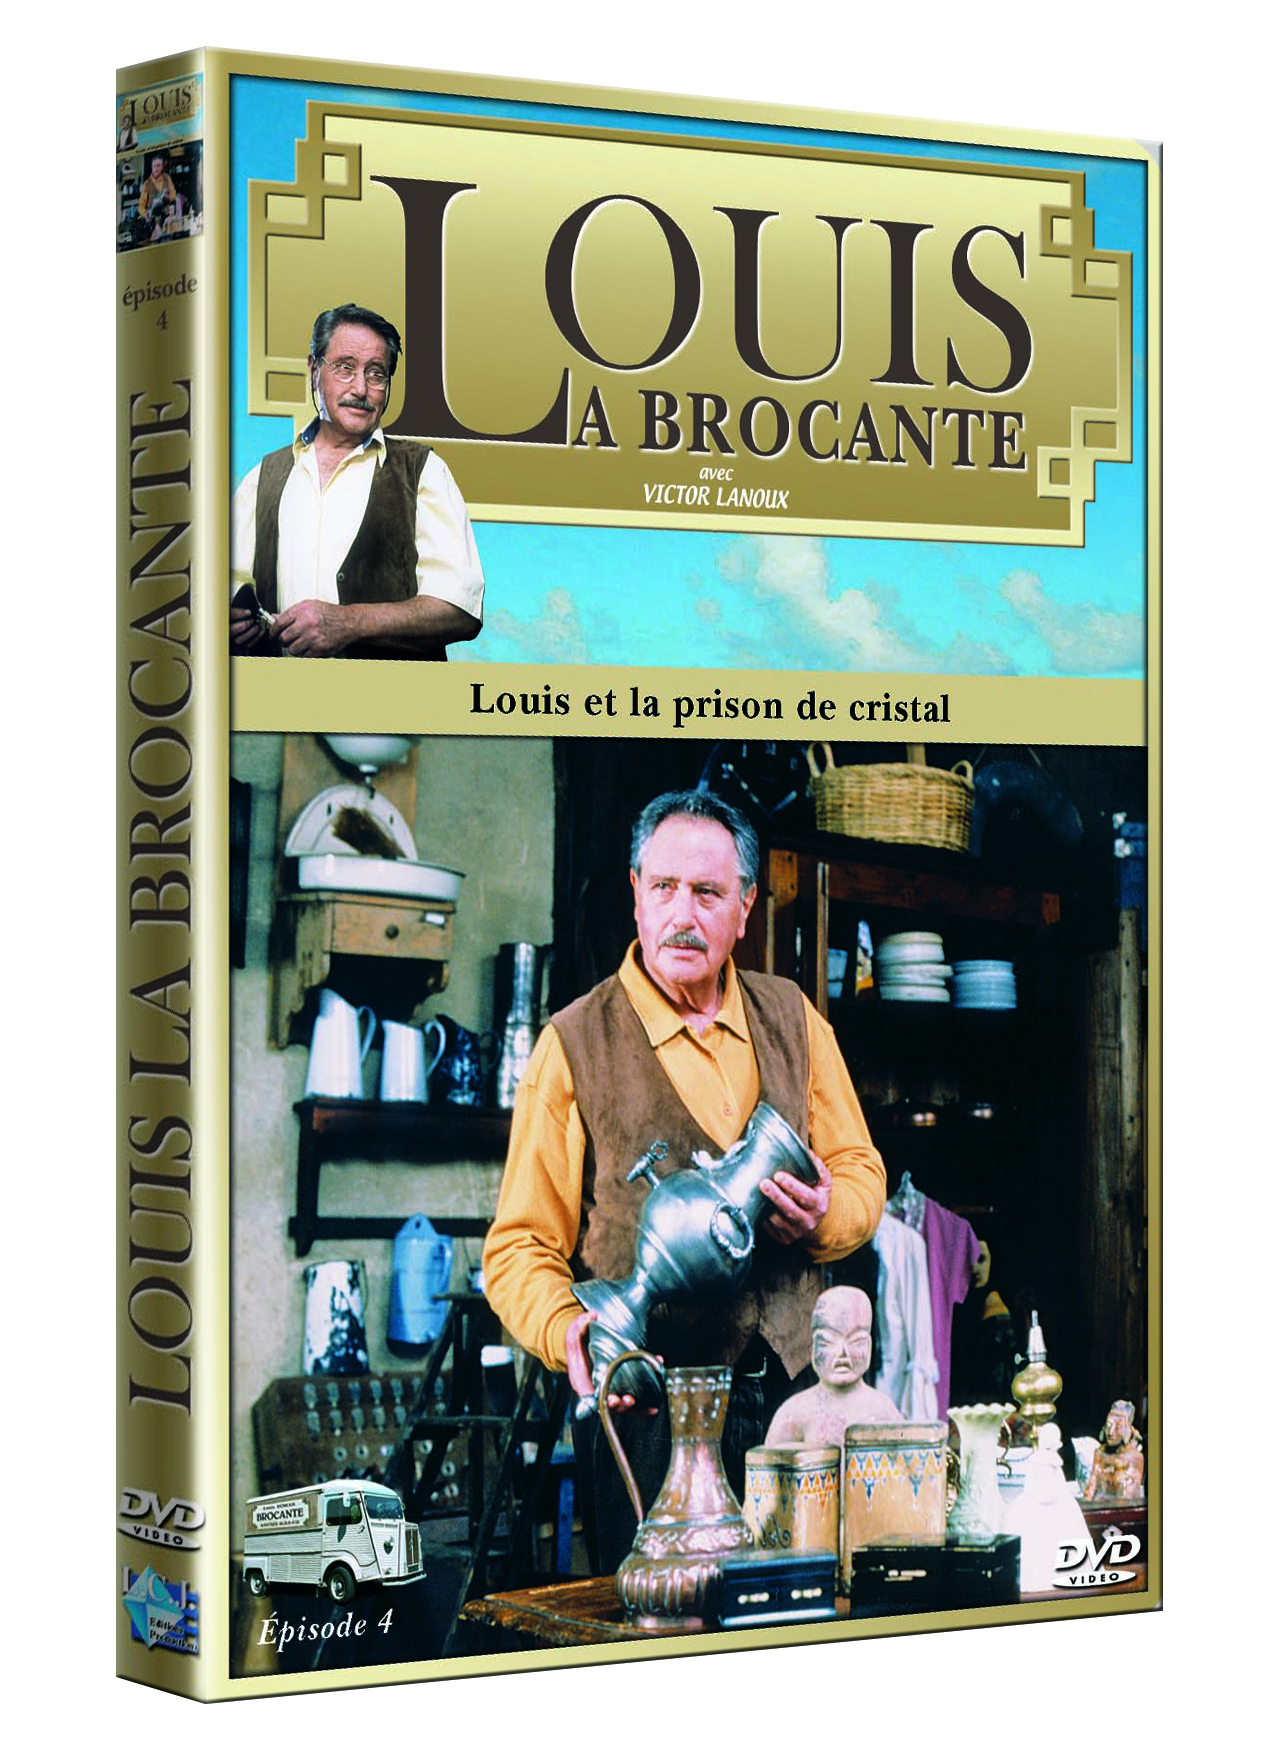 LOUIS LA BROCANTE EPISODE 4 - DVD